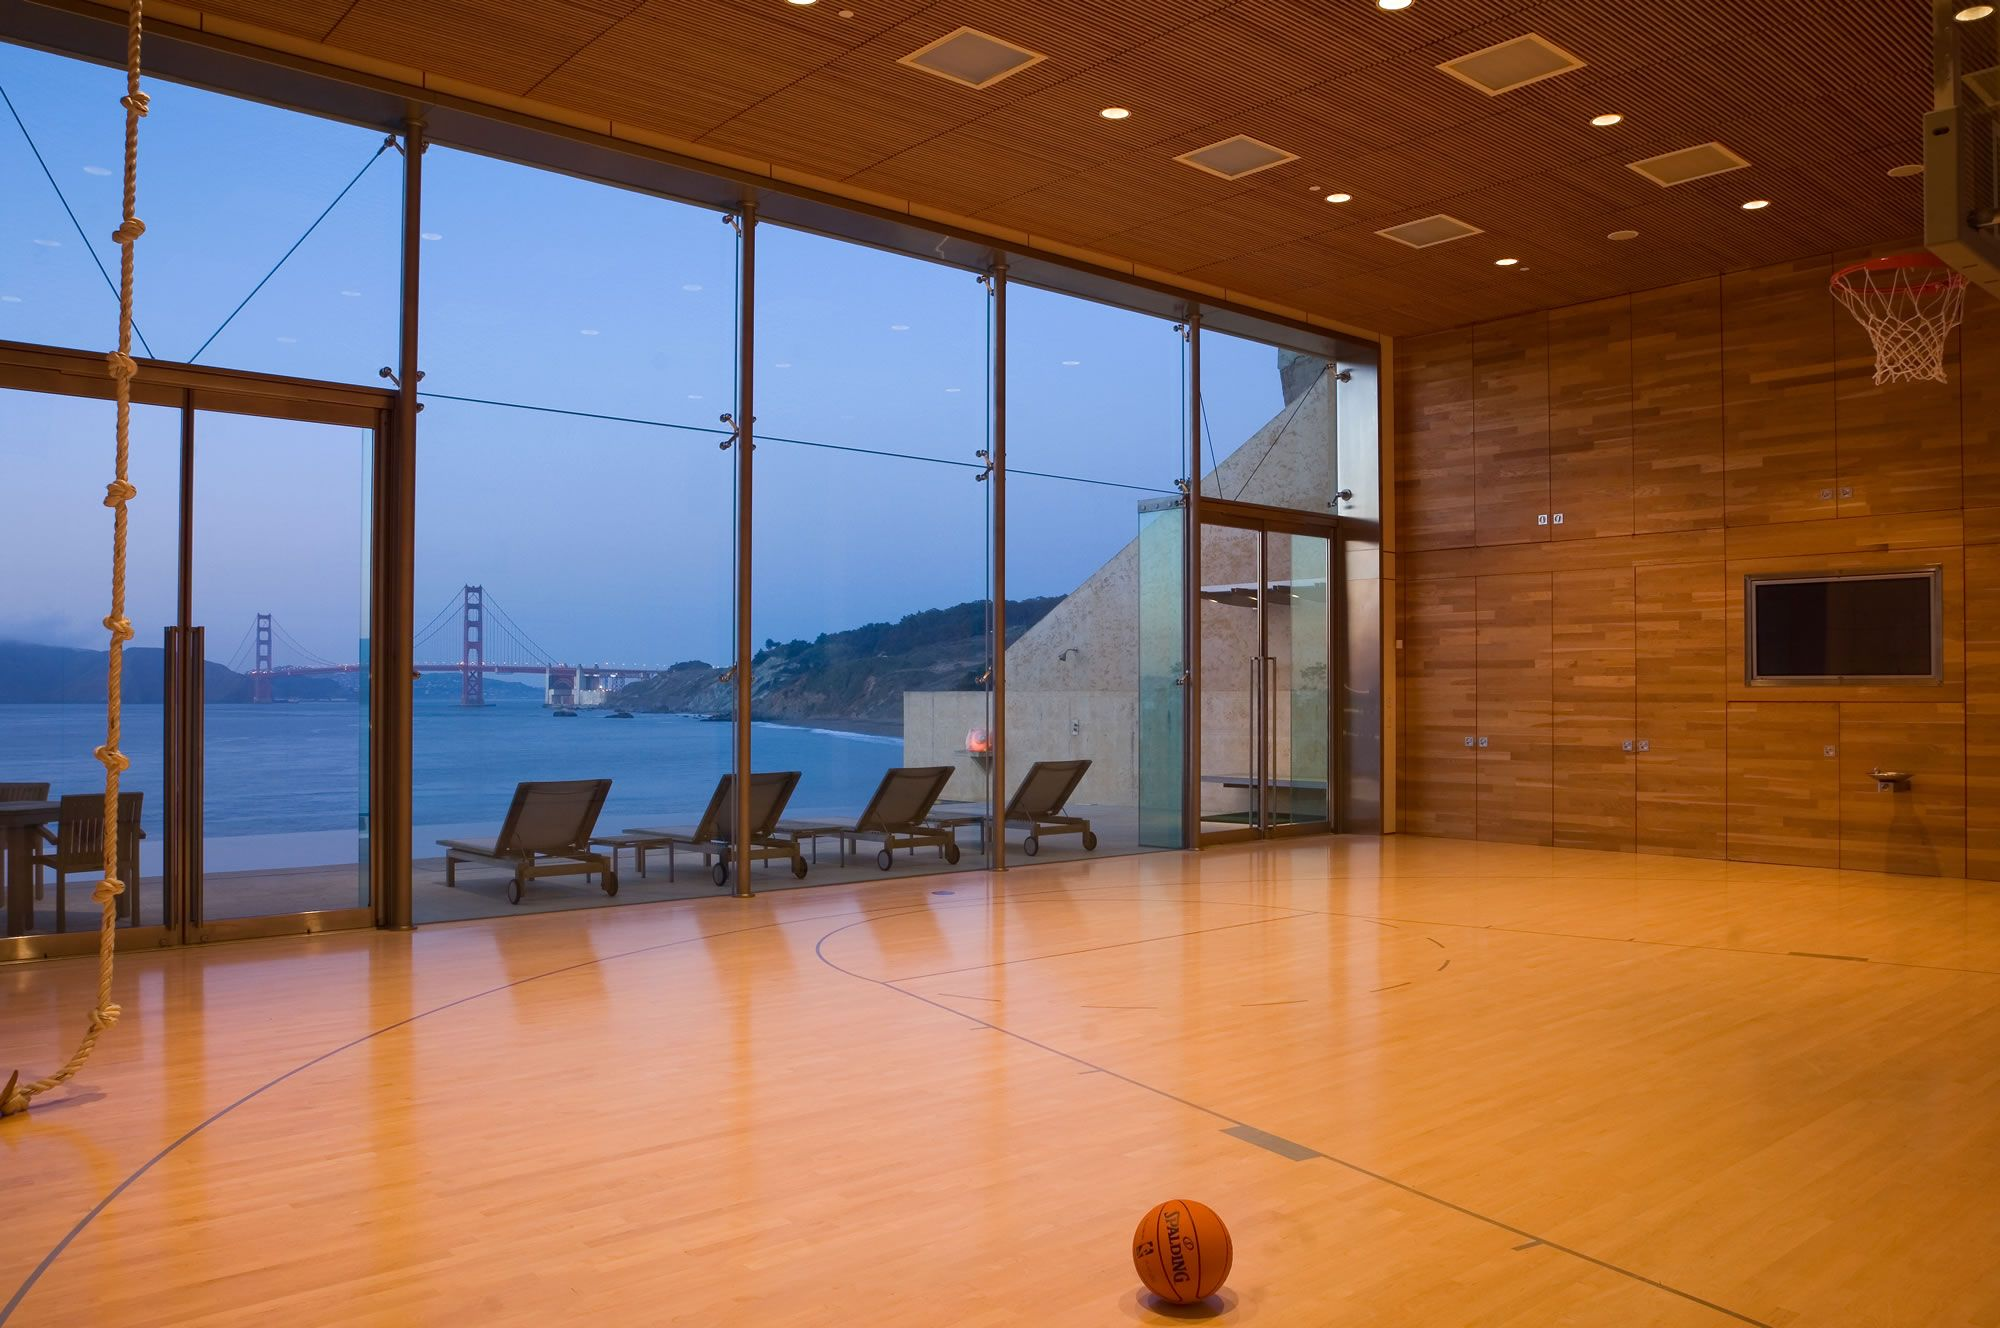 Sea Cliff Addition Gym Indoor Basketball Court In 2019